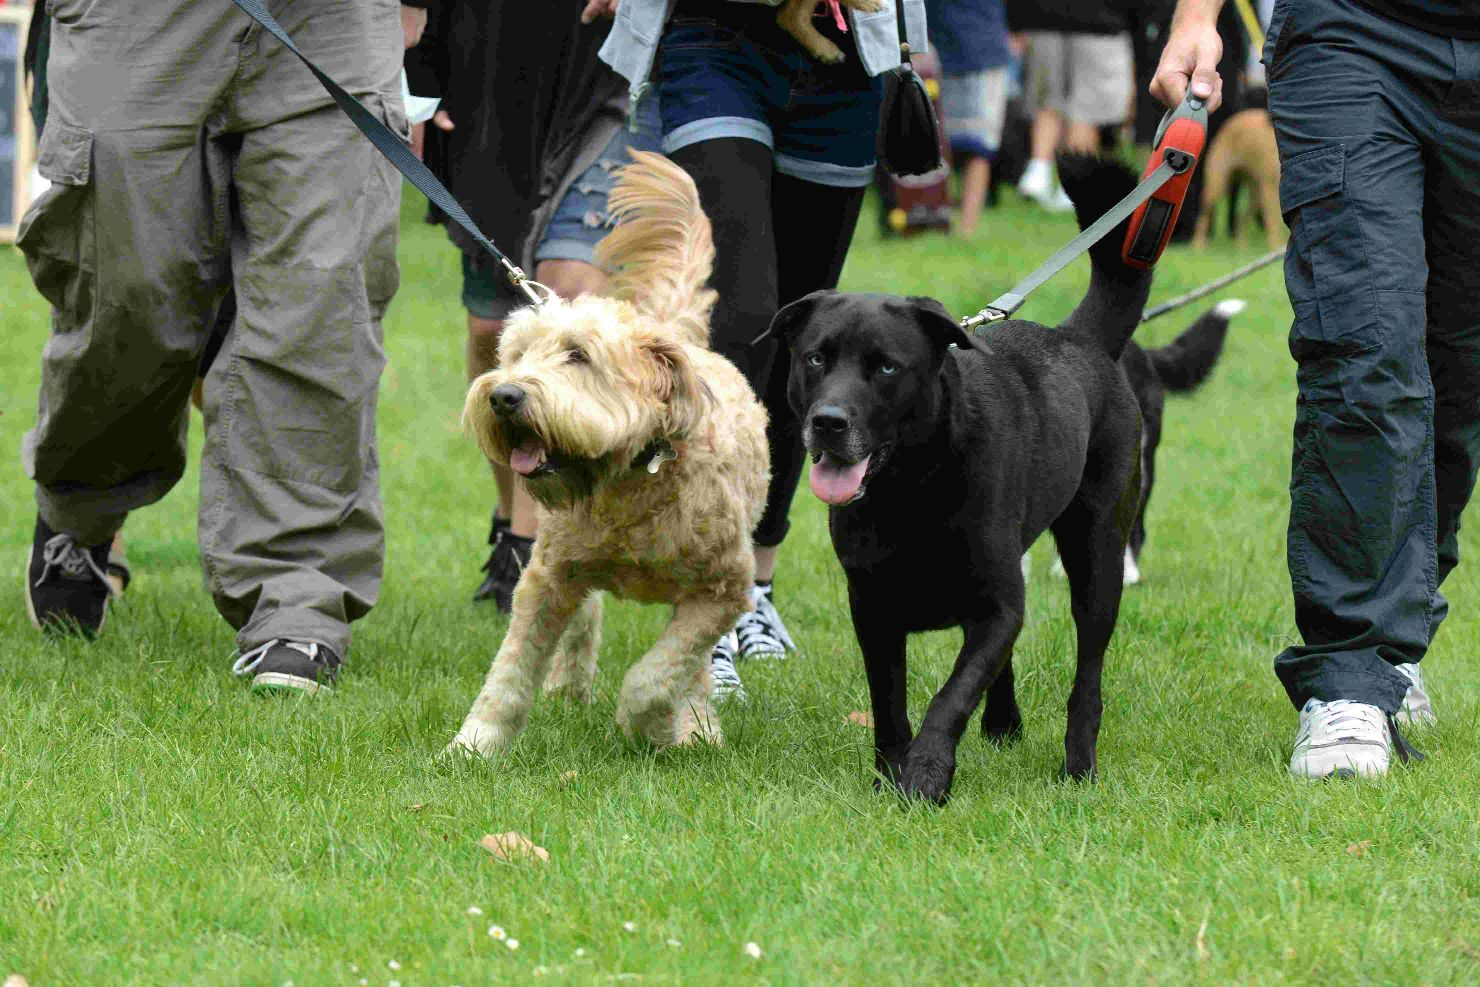 Castle church hosts fete and dog show.